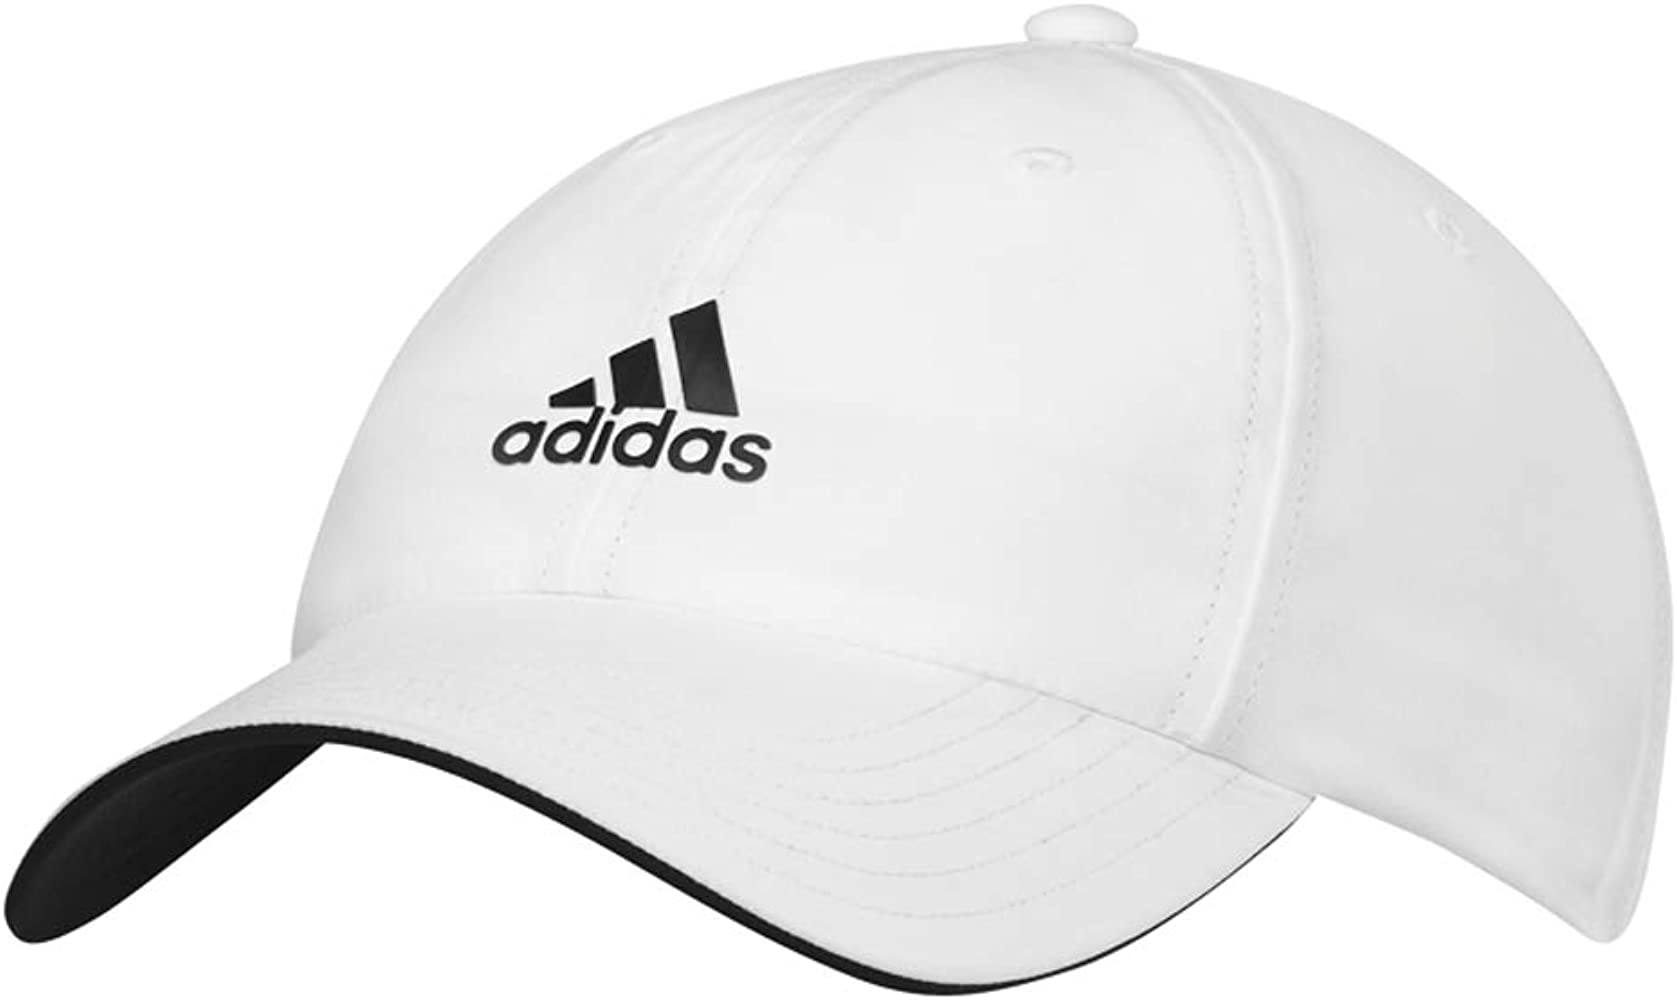 adidas Gorra Golf Adulto, Blanco: Amazon.es: Ropa y accesorios